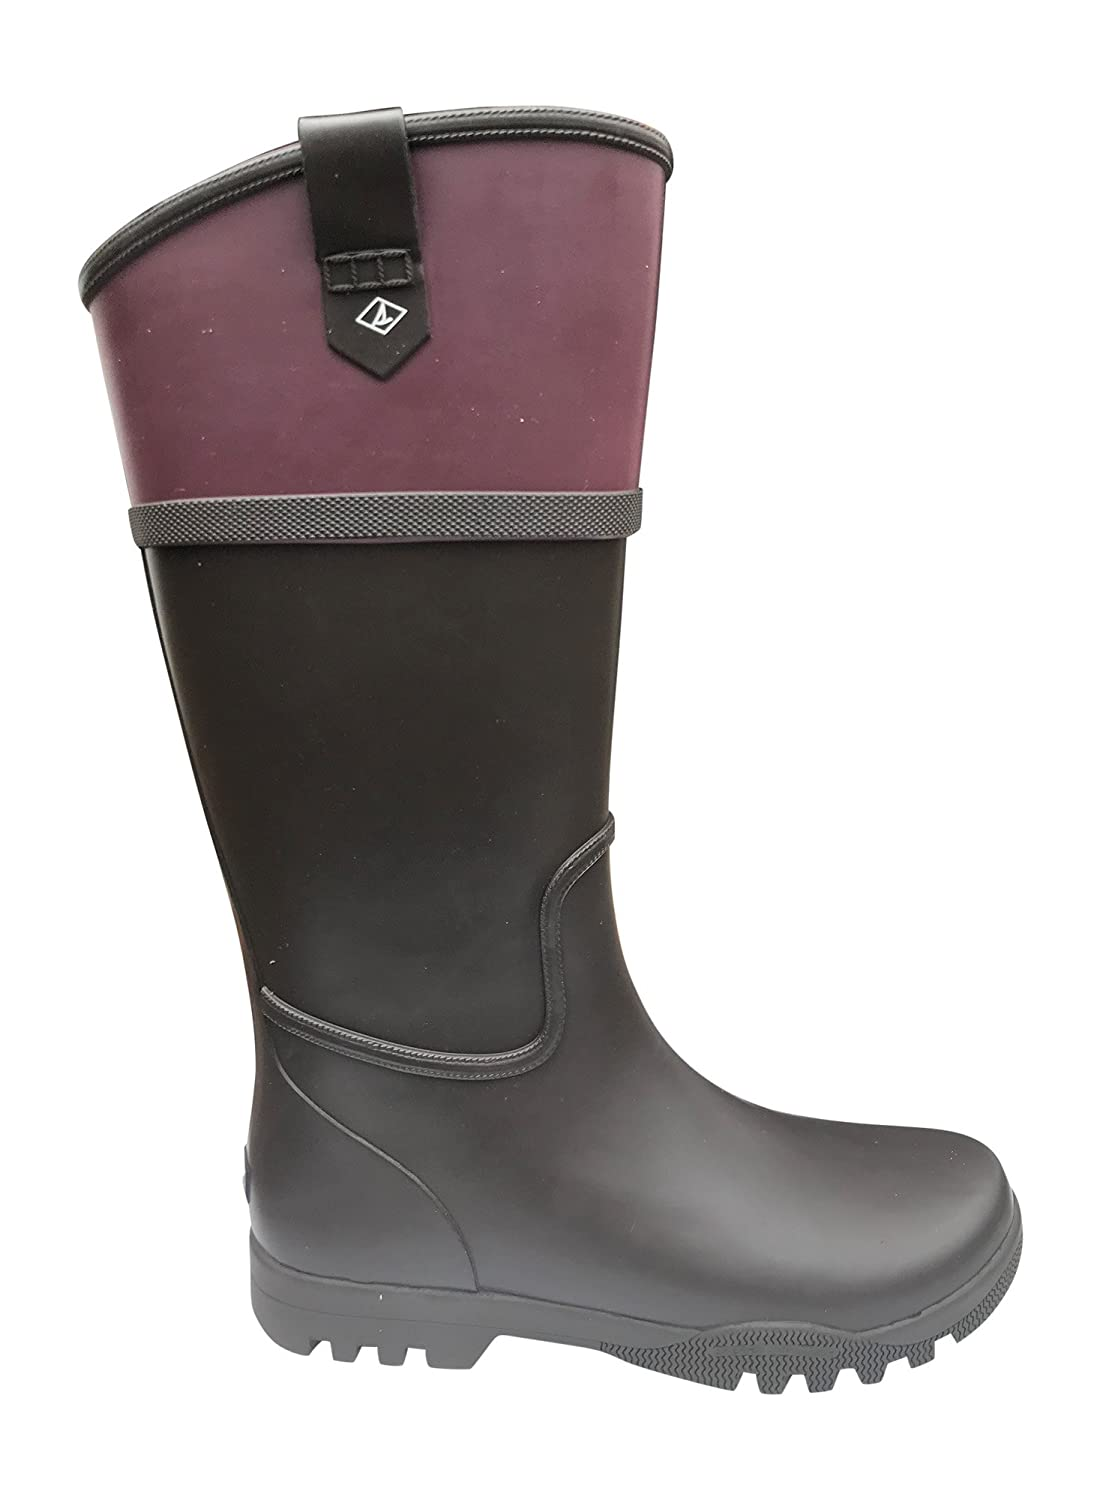 9e521774d04 Sperry Top-Sider Womens Nellie Kate Rain Boot